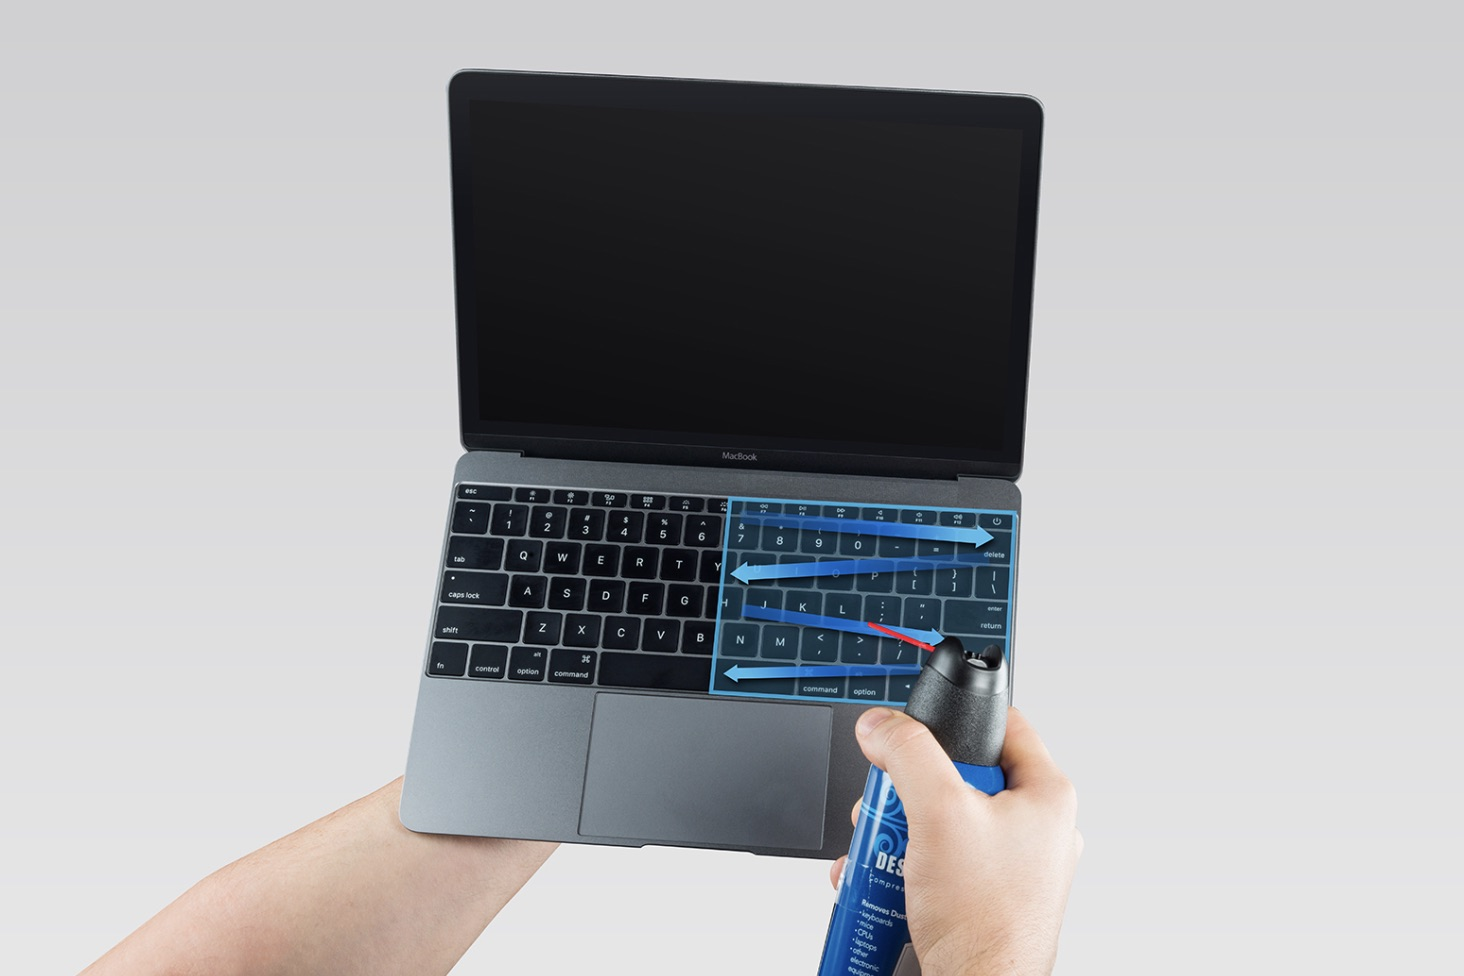 How to fix stuck MacBook and MacBook Pro keyboard - 9to5Mac